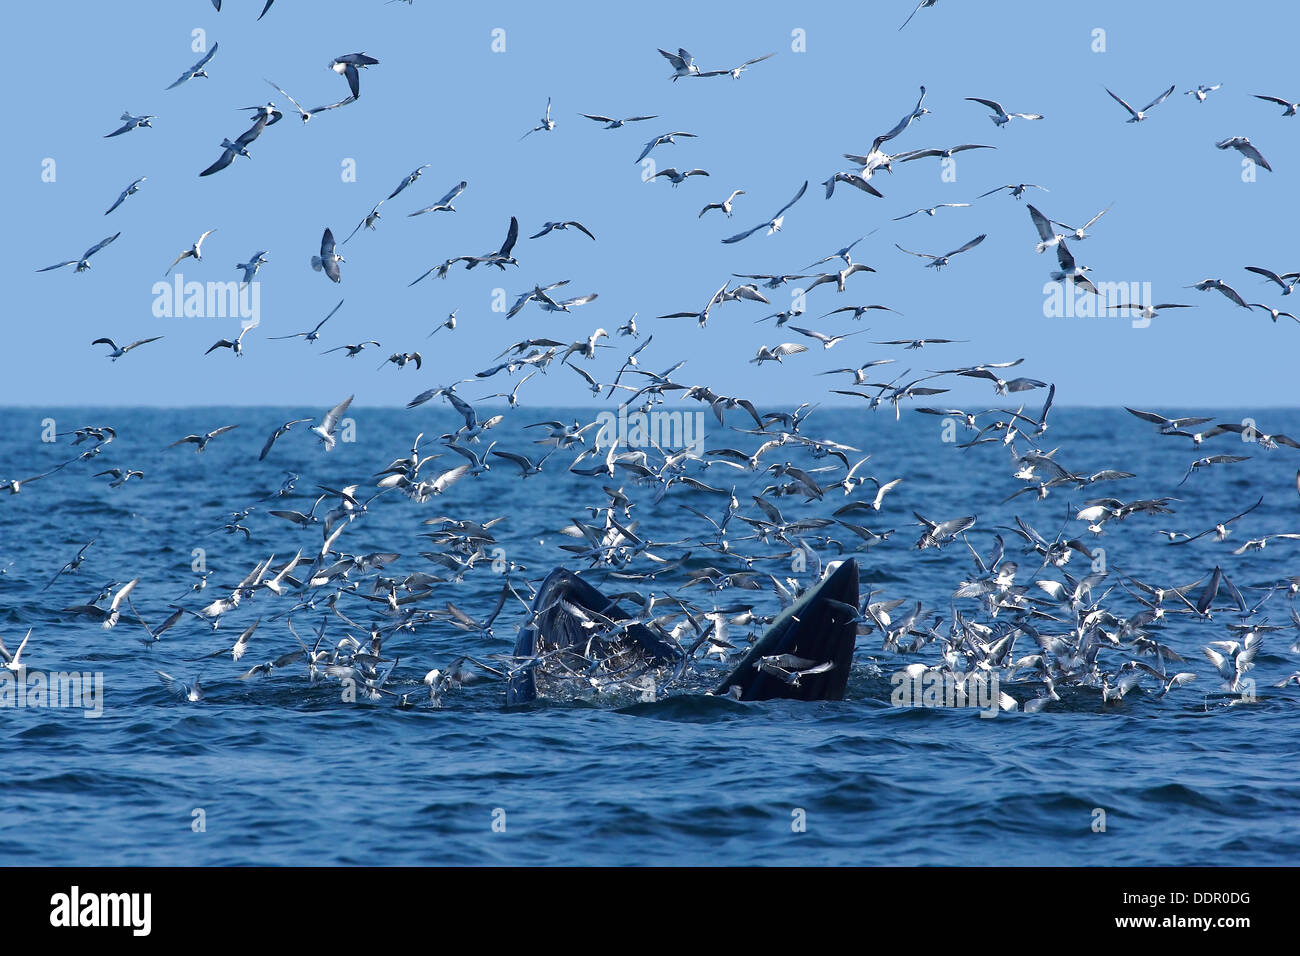 bryde and seagull interspecific interaction in nature - Stock Image